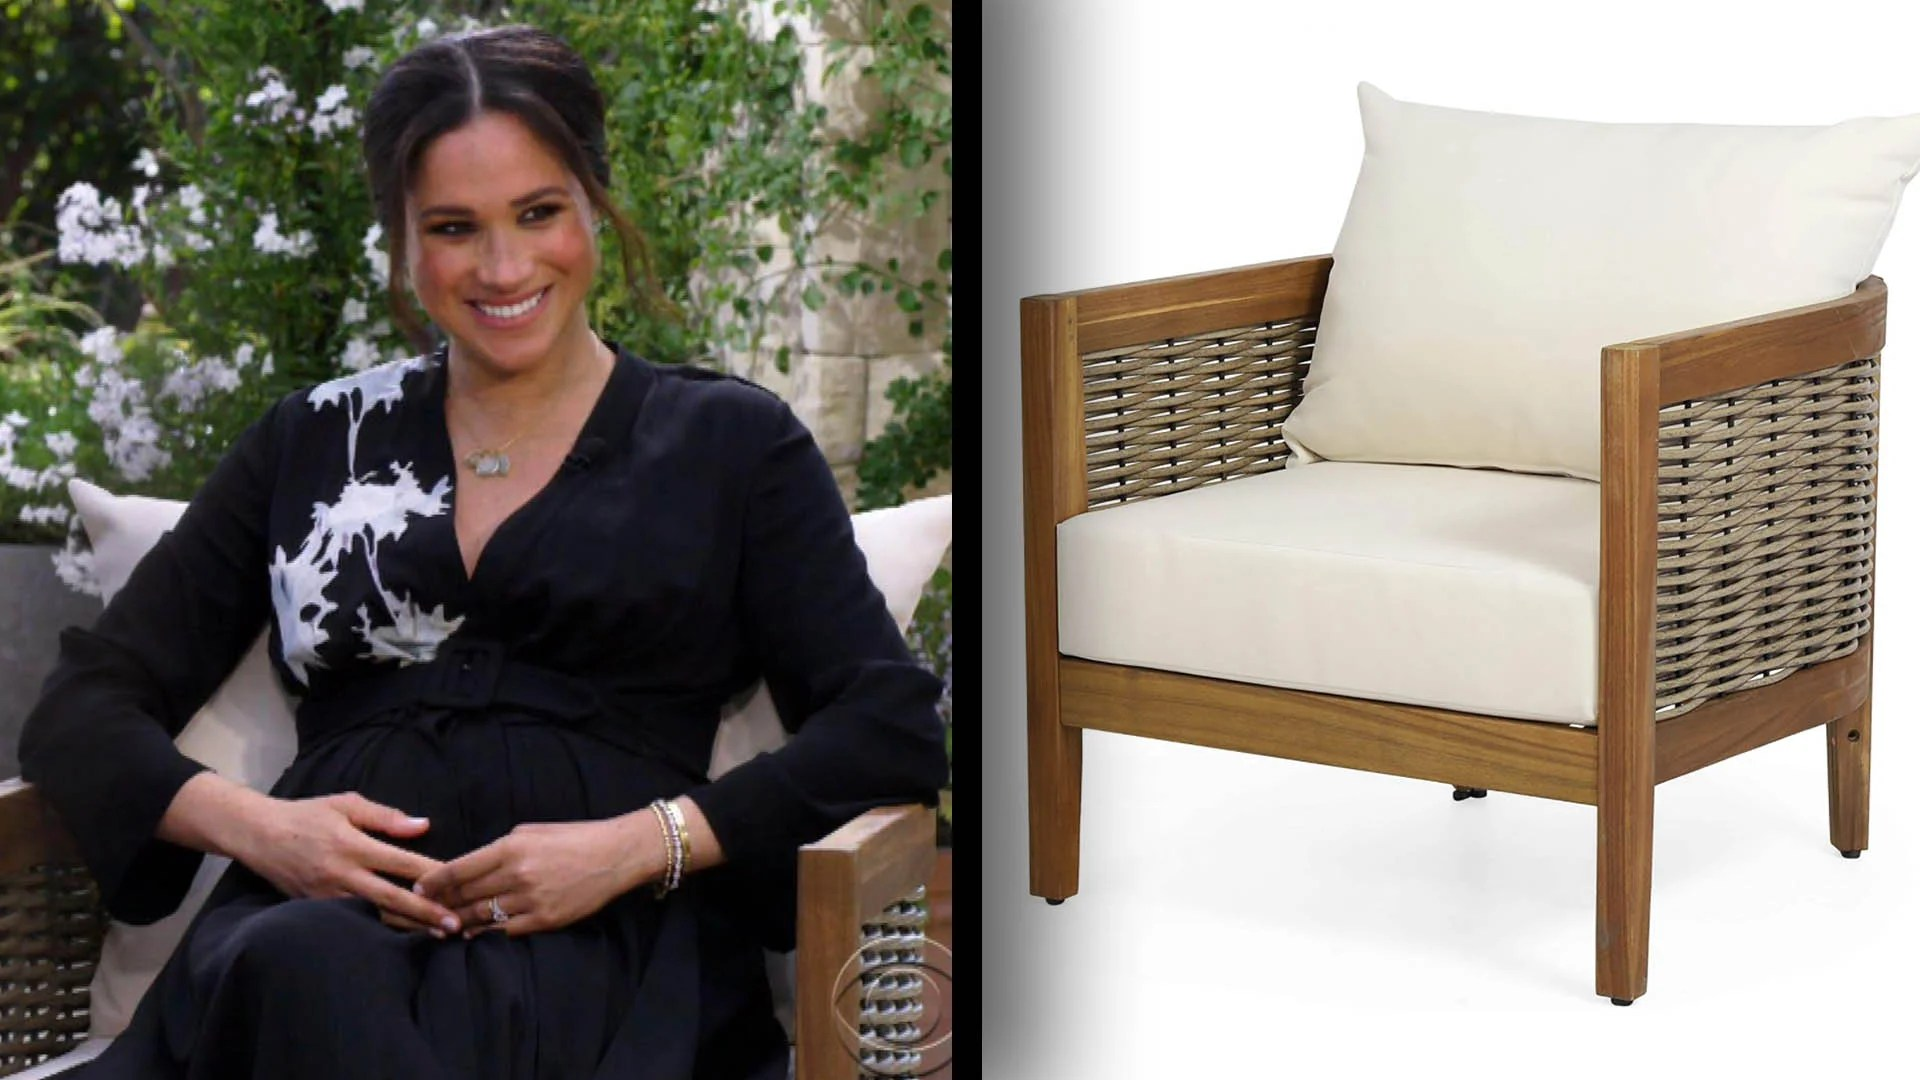 'Peter Brady' $554 Chairs Sell Out After Oprah's Harry and Meghan Interview | Inside Edition